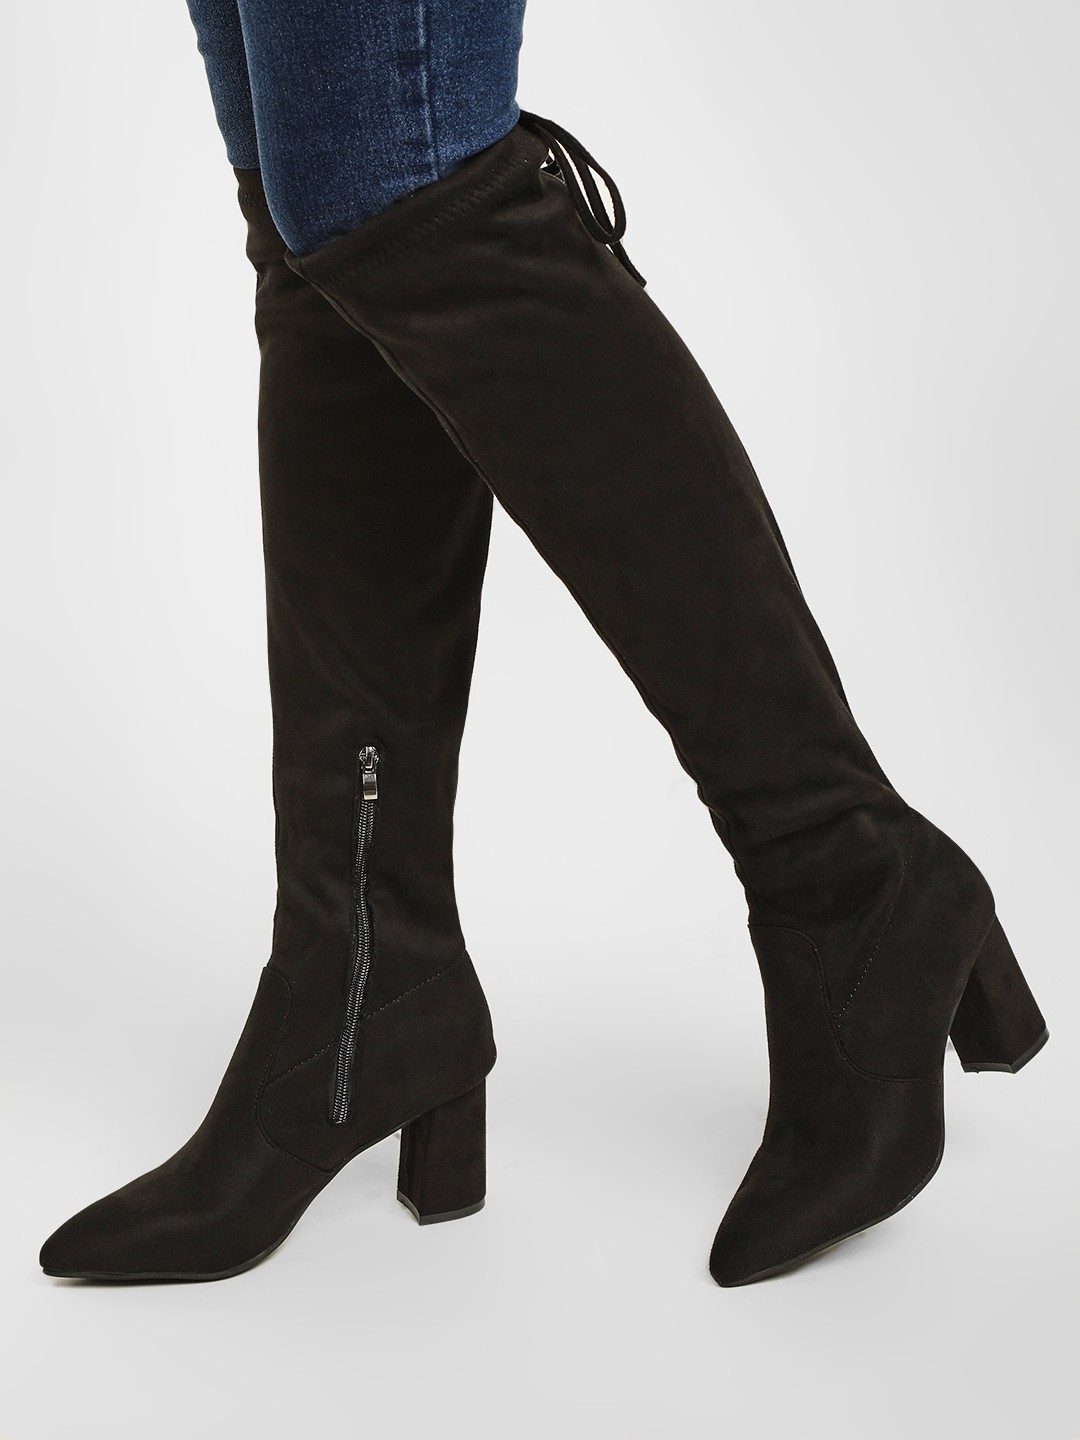 Sole Story Black Knee High Block Heeled Boots 1